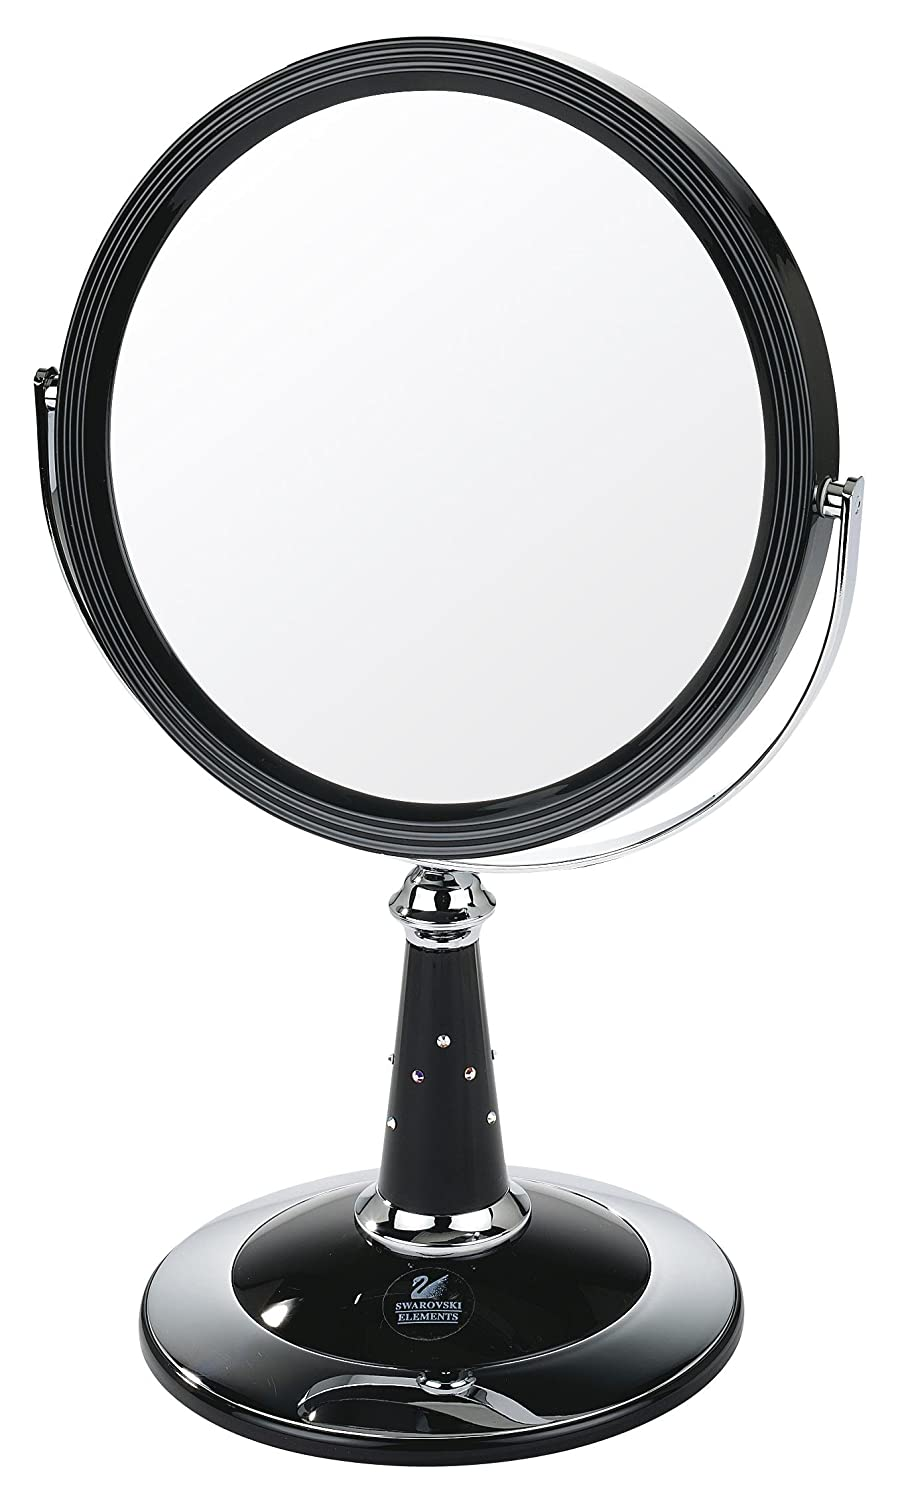 makeup mirror target. uv finish pedestal mirror with swarovski elements black/chrome true image x7 magnified 29cmx17.5cm: amazon.co.uk: beauty makeup target